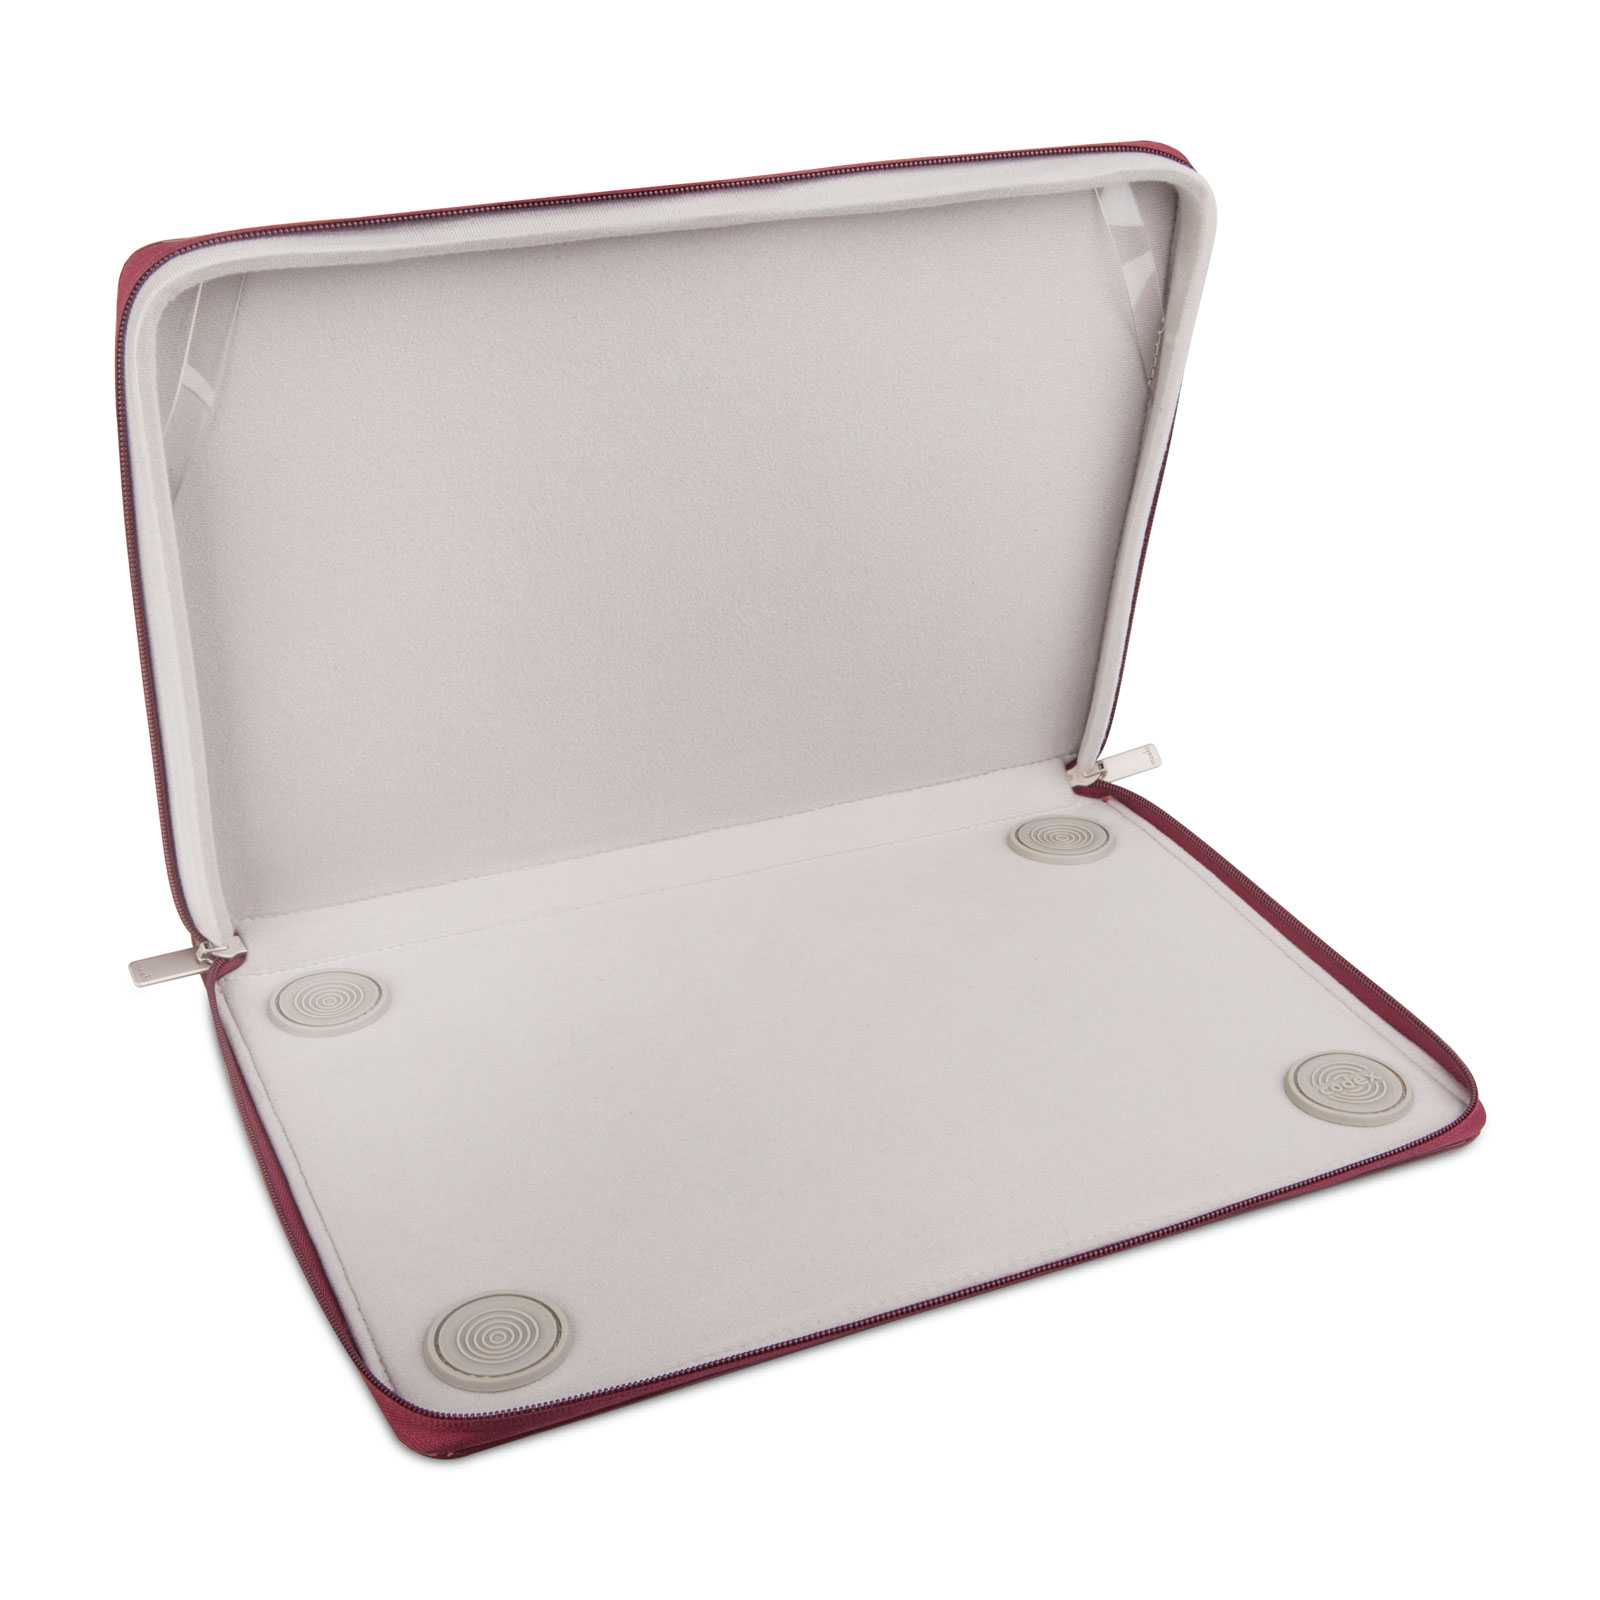 "Codex 13"" Protective Carrying Case for MacBook-5-thumbnail"